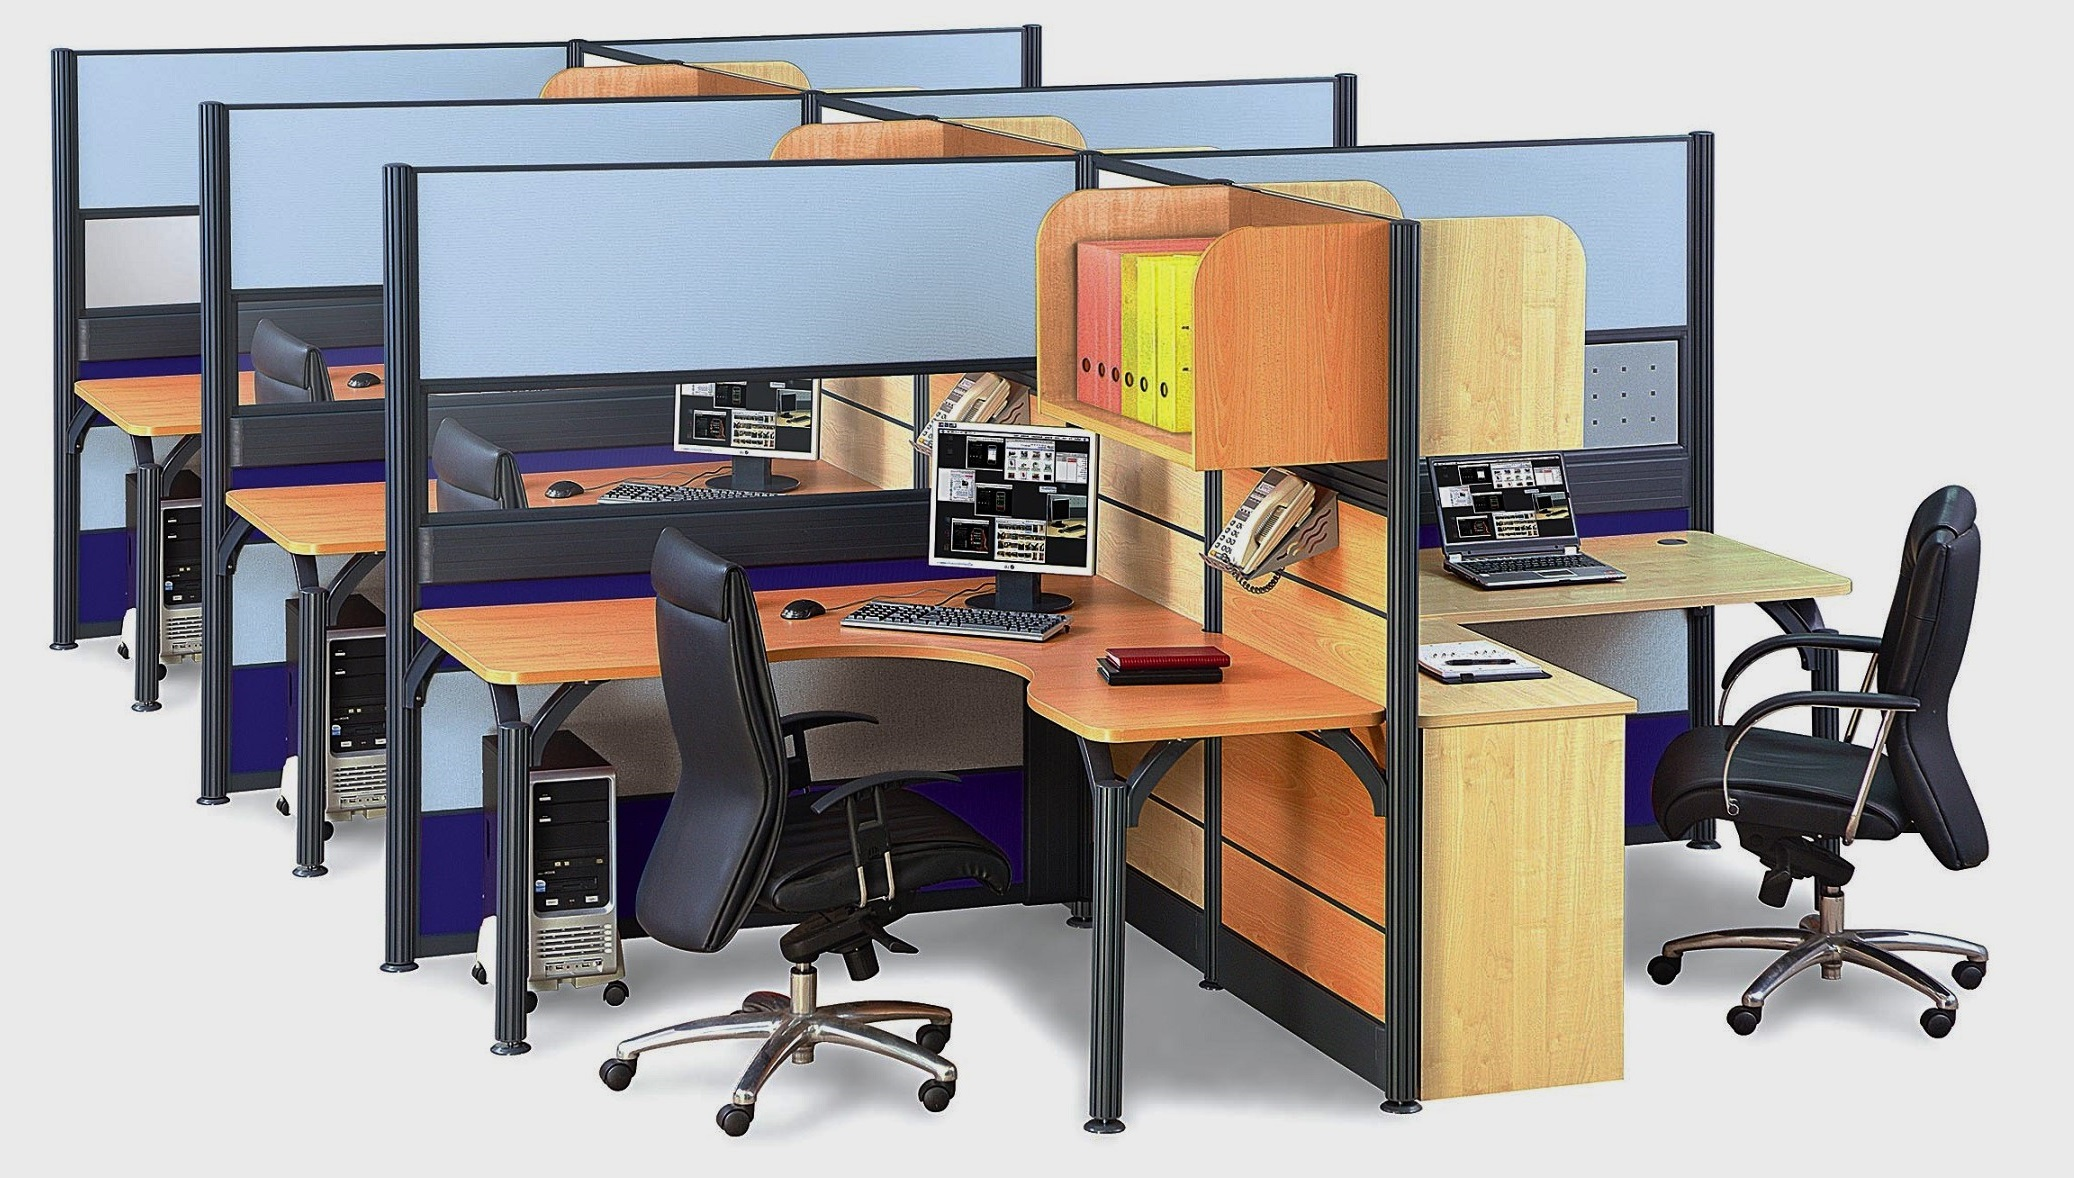 The Office Furniture Singapore